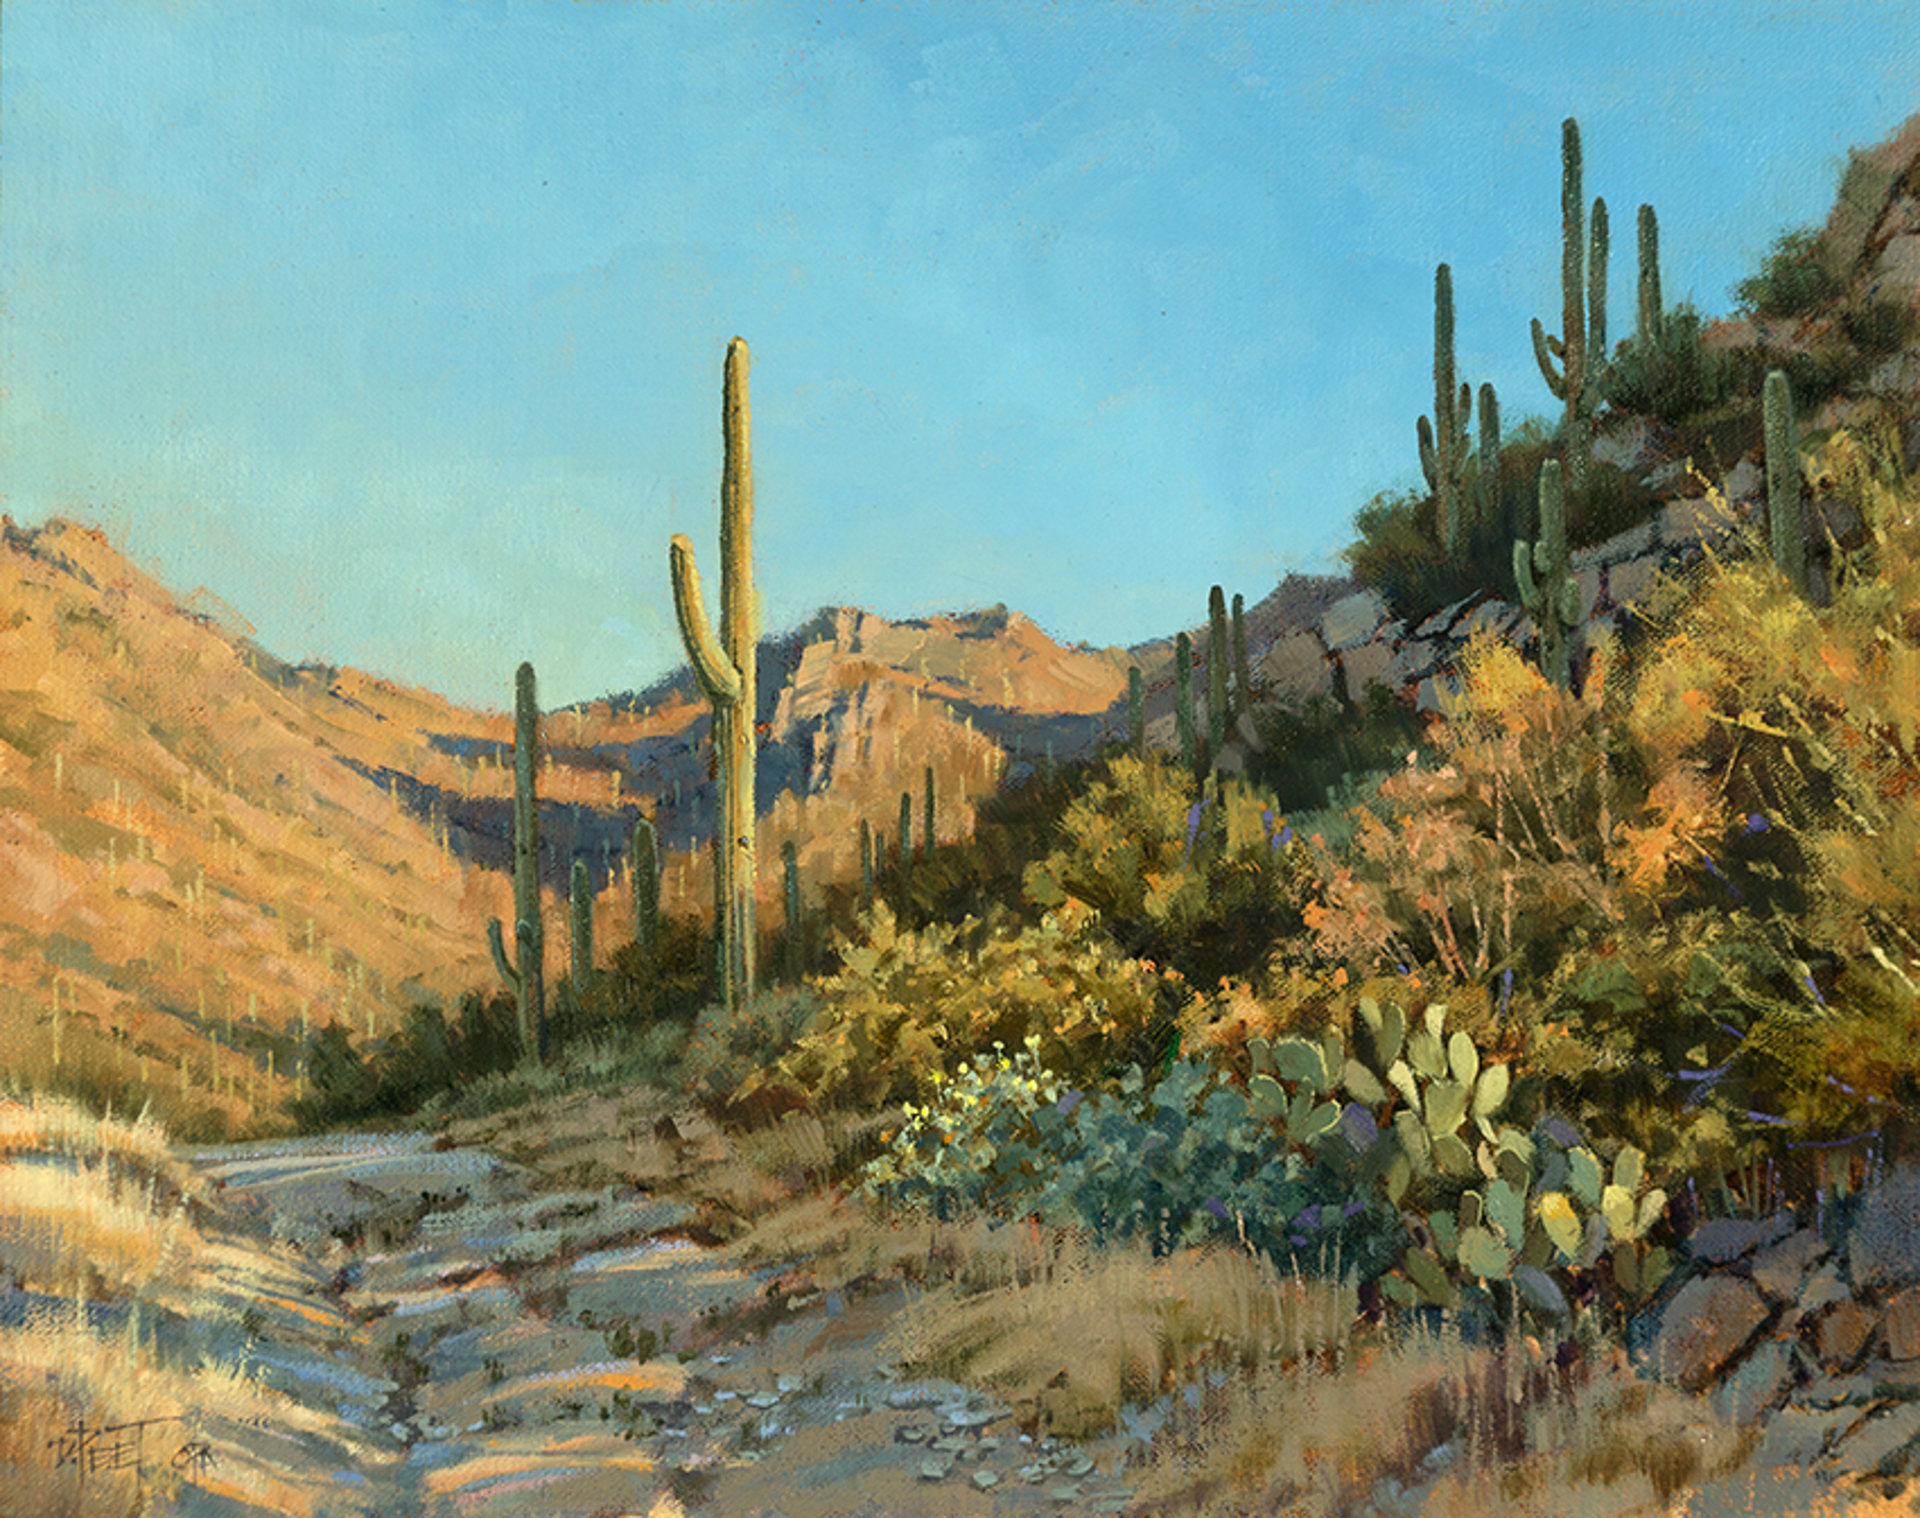 A Cool Desert Morning by Darcie Peet